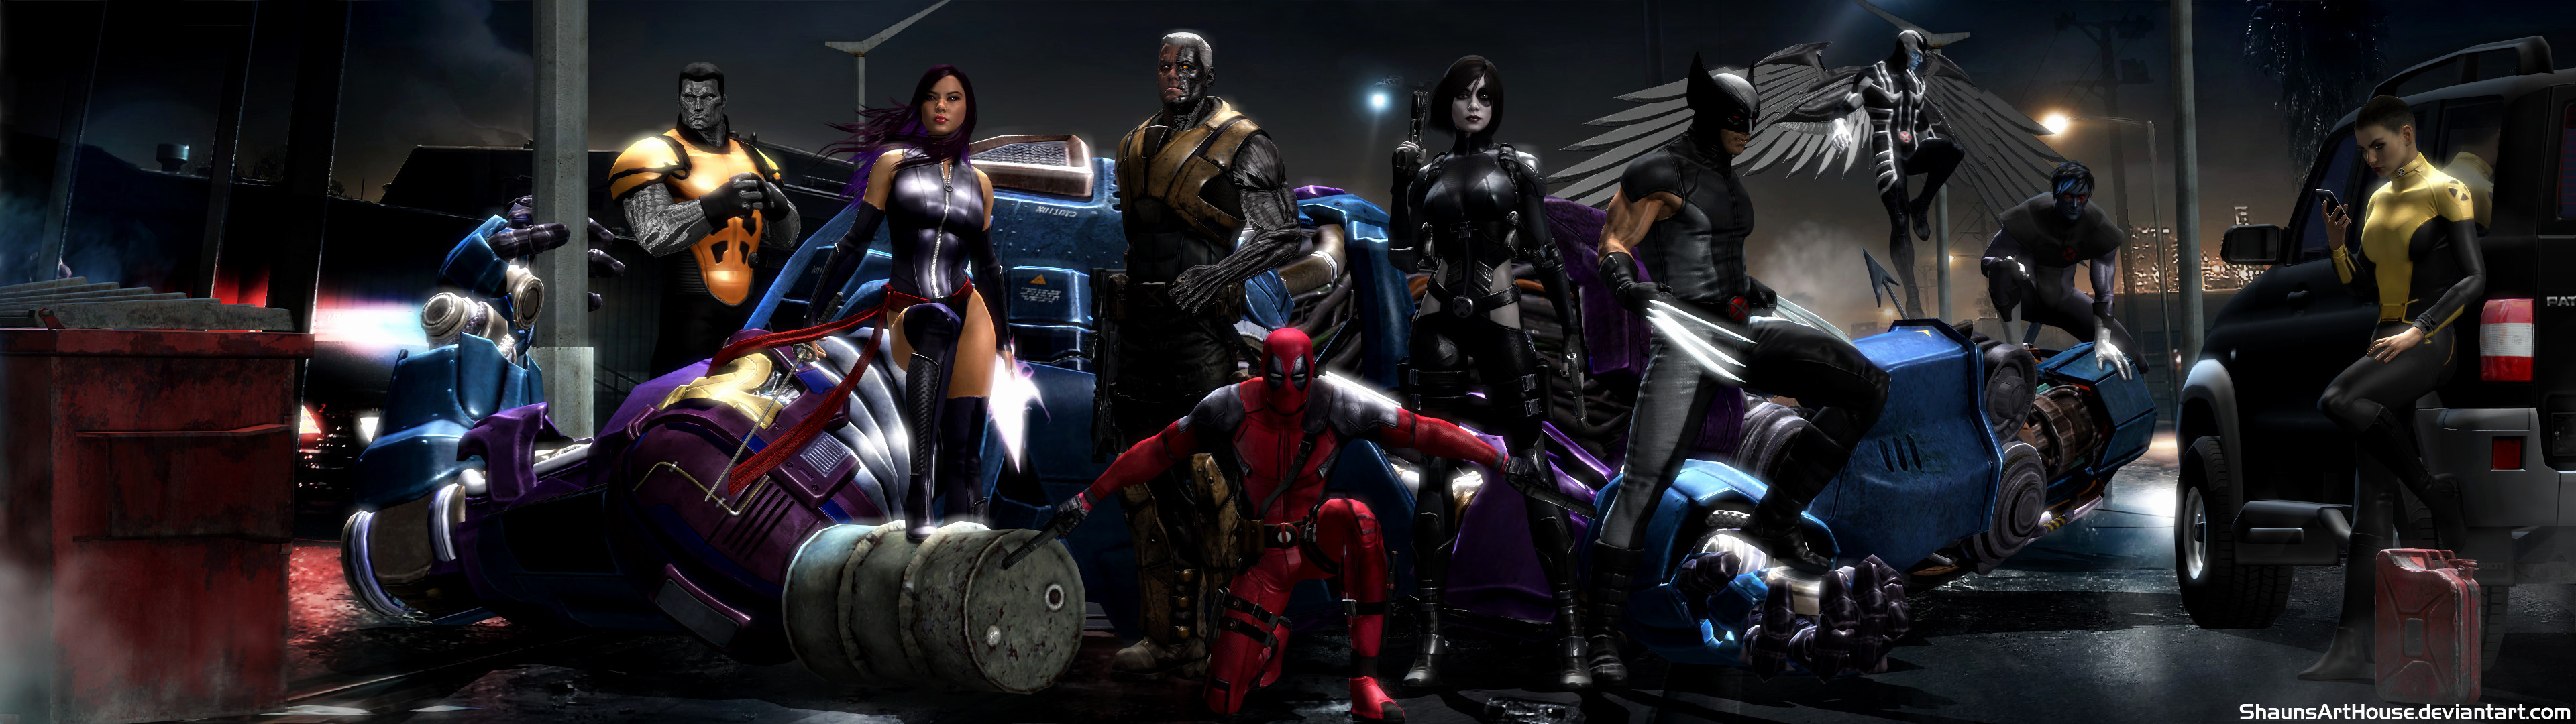 Res: 3840x1080, Dual Screen Wallpaper Best Of X force Movie Dual Screen Wallpaper by Shaunsarthouse On Deviantart